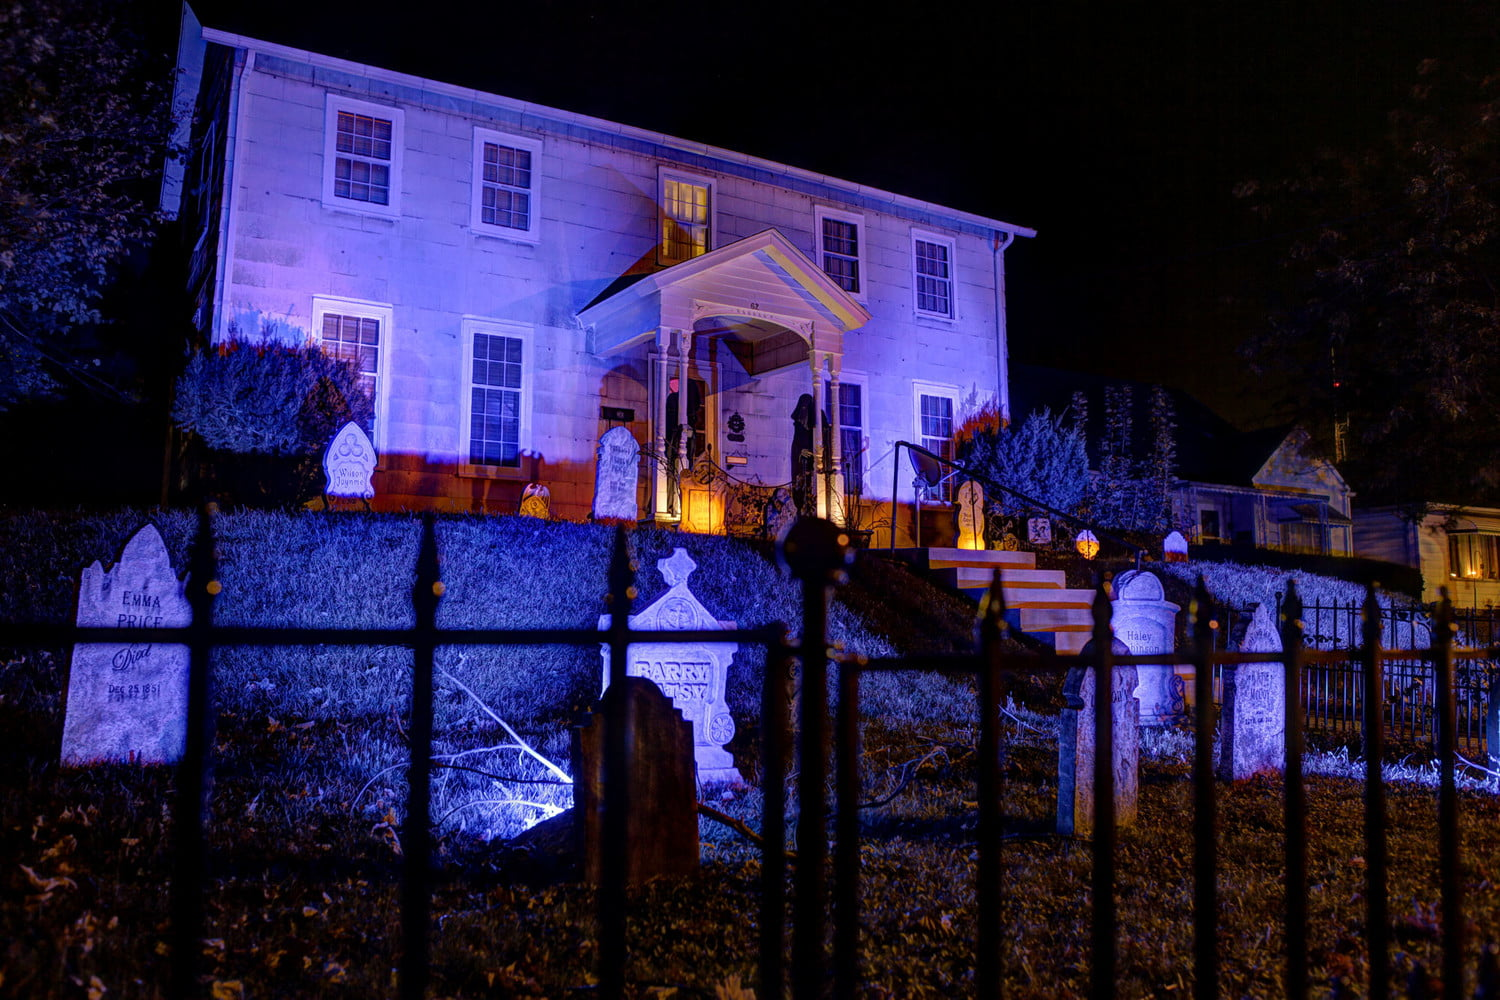 Halloween Spooky House.How To Create Spooky Halloween Effects With Smart Lighting